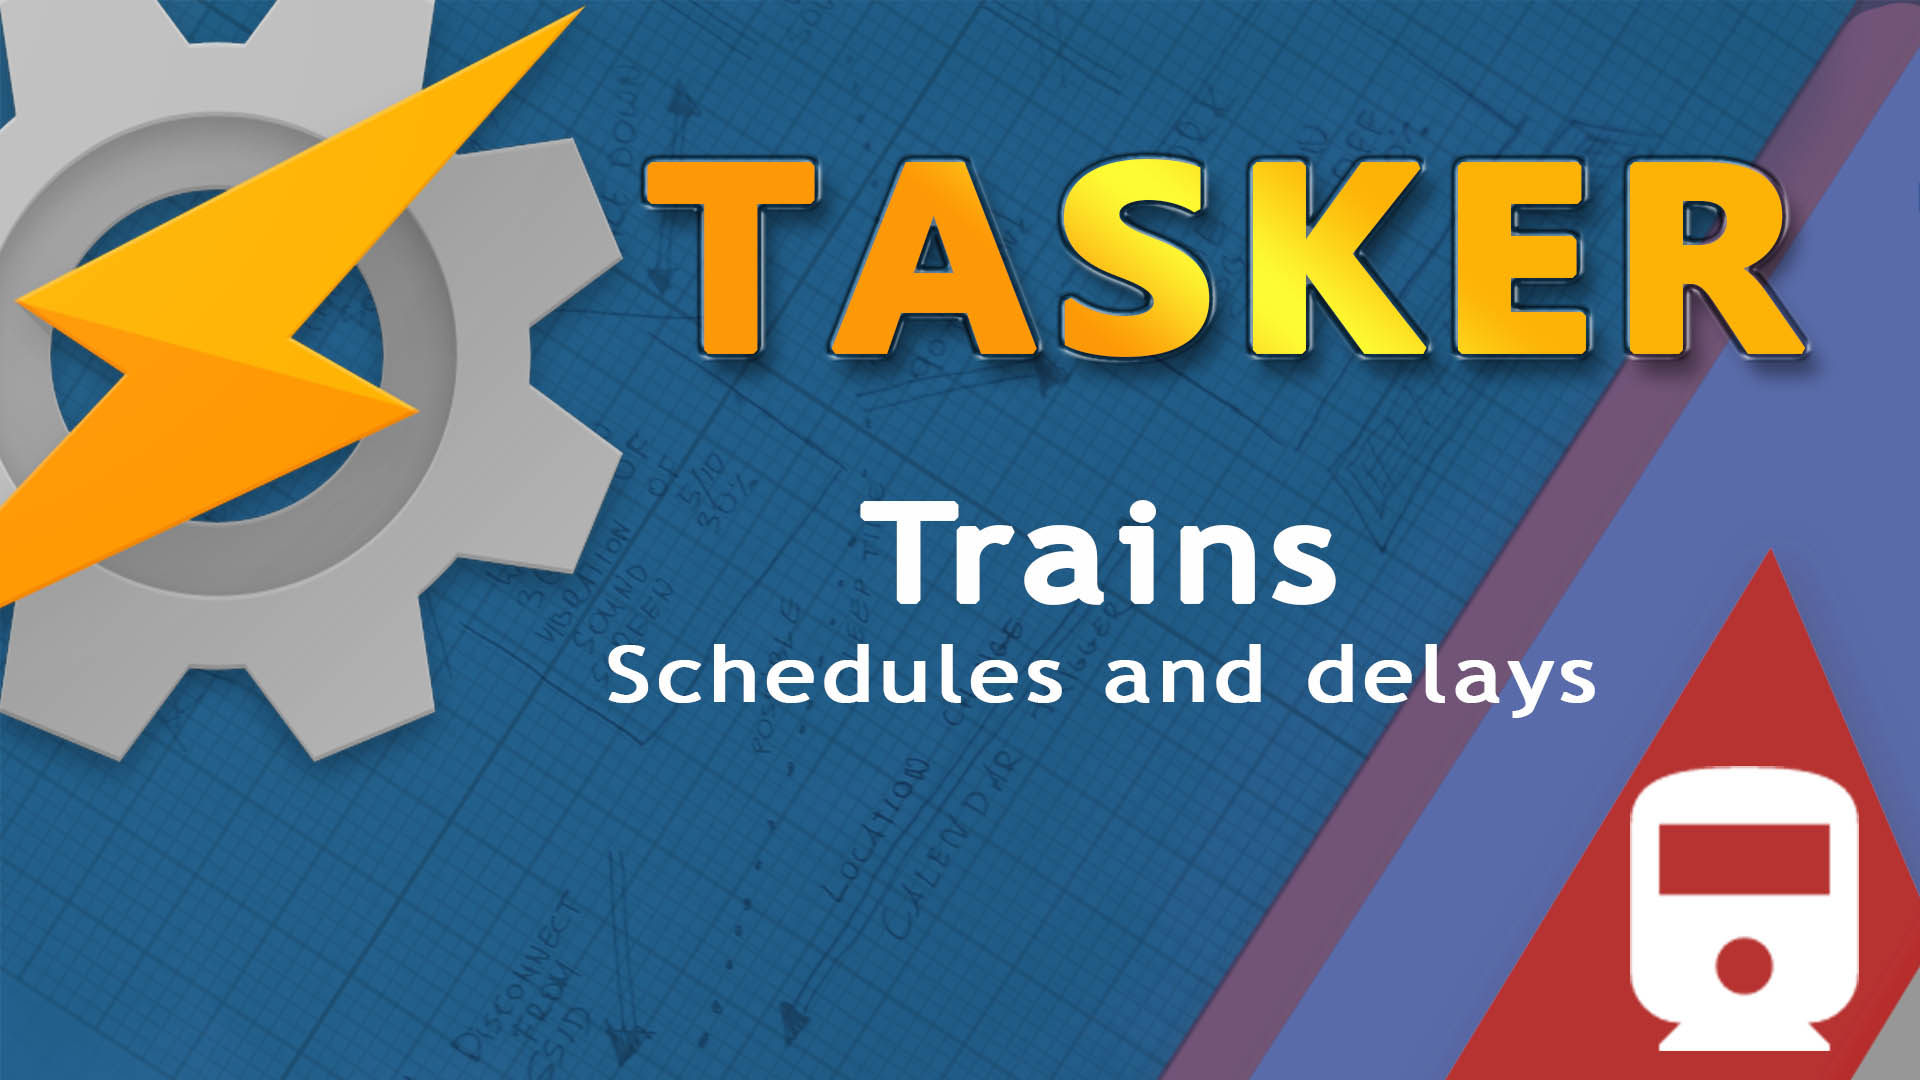 train schedules and delays Tasker